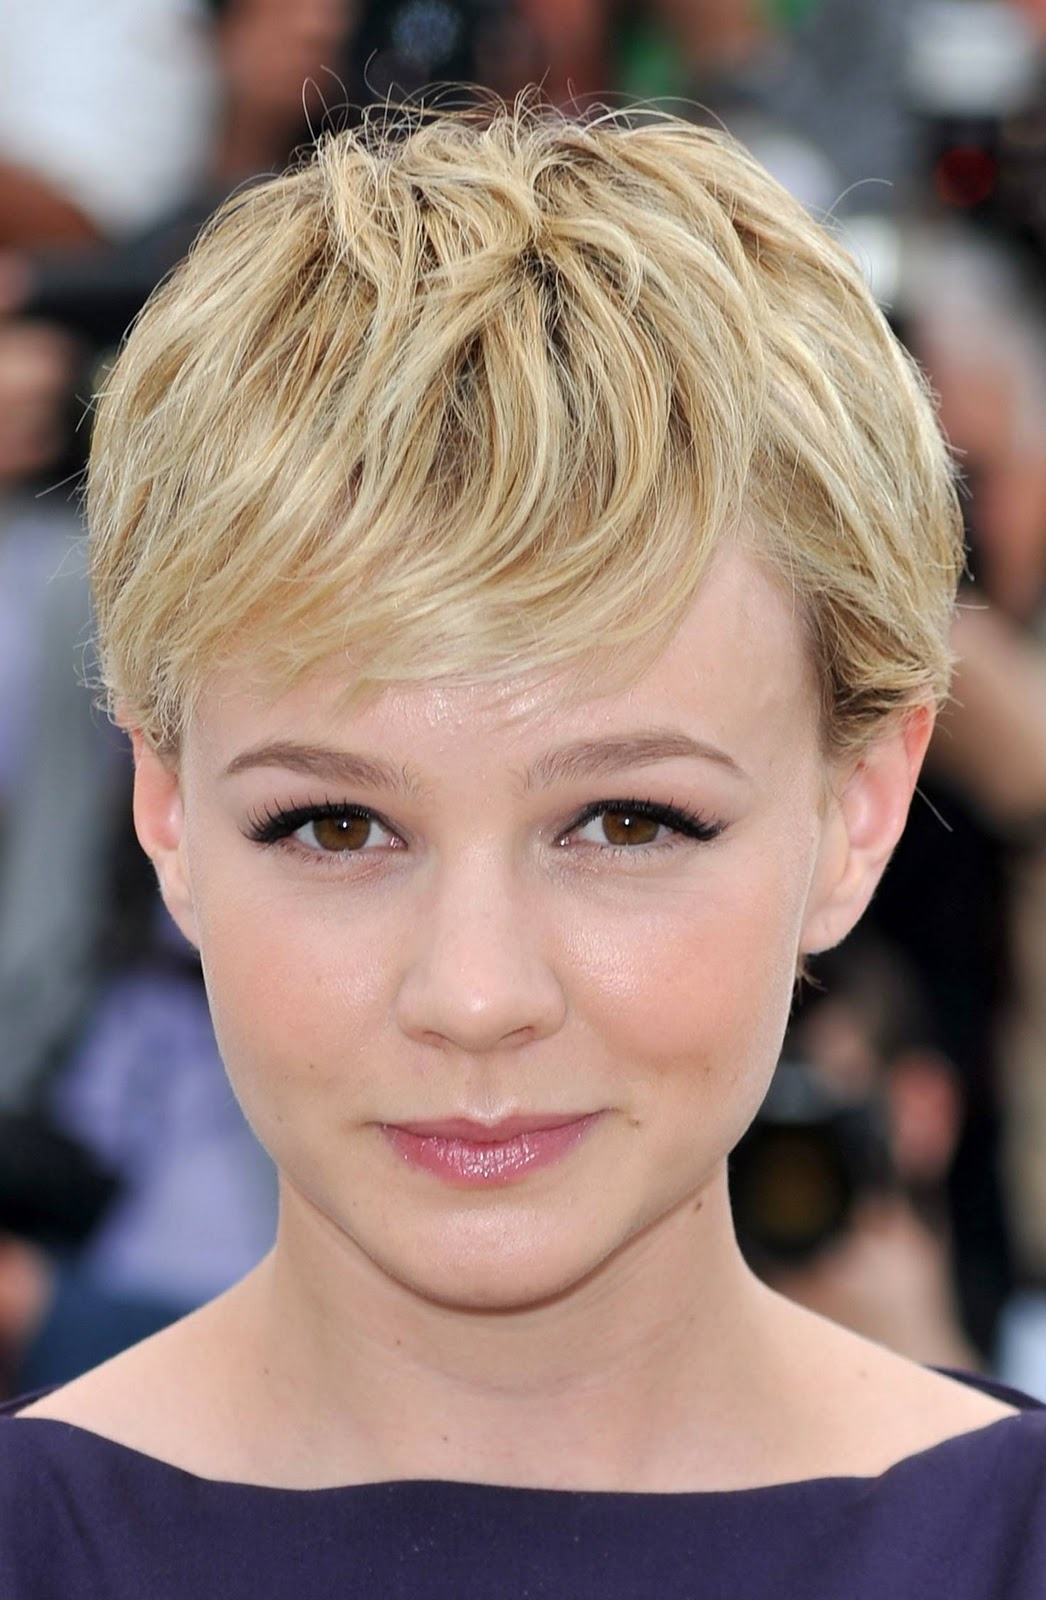 short hairstyles, celebrity short hairstyles, celebrity short hairstyle, latest celebrity short hairstyles, latest celebrity short hairstyles photos, latest celebrity short hairstyles photo, latest celebrity short hairstyles pictures, latest celebrity short hairstyles pics,